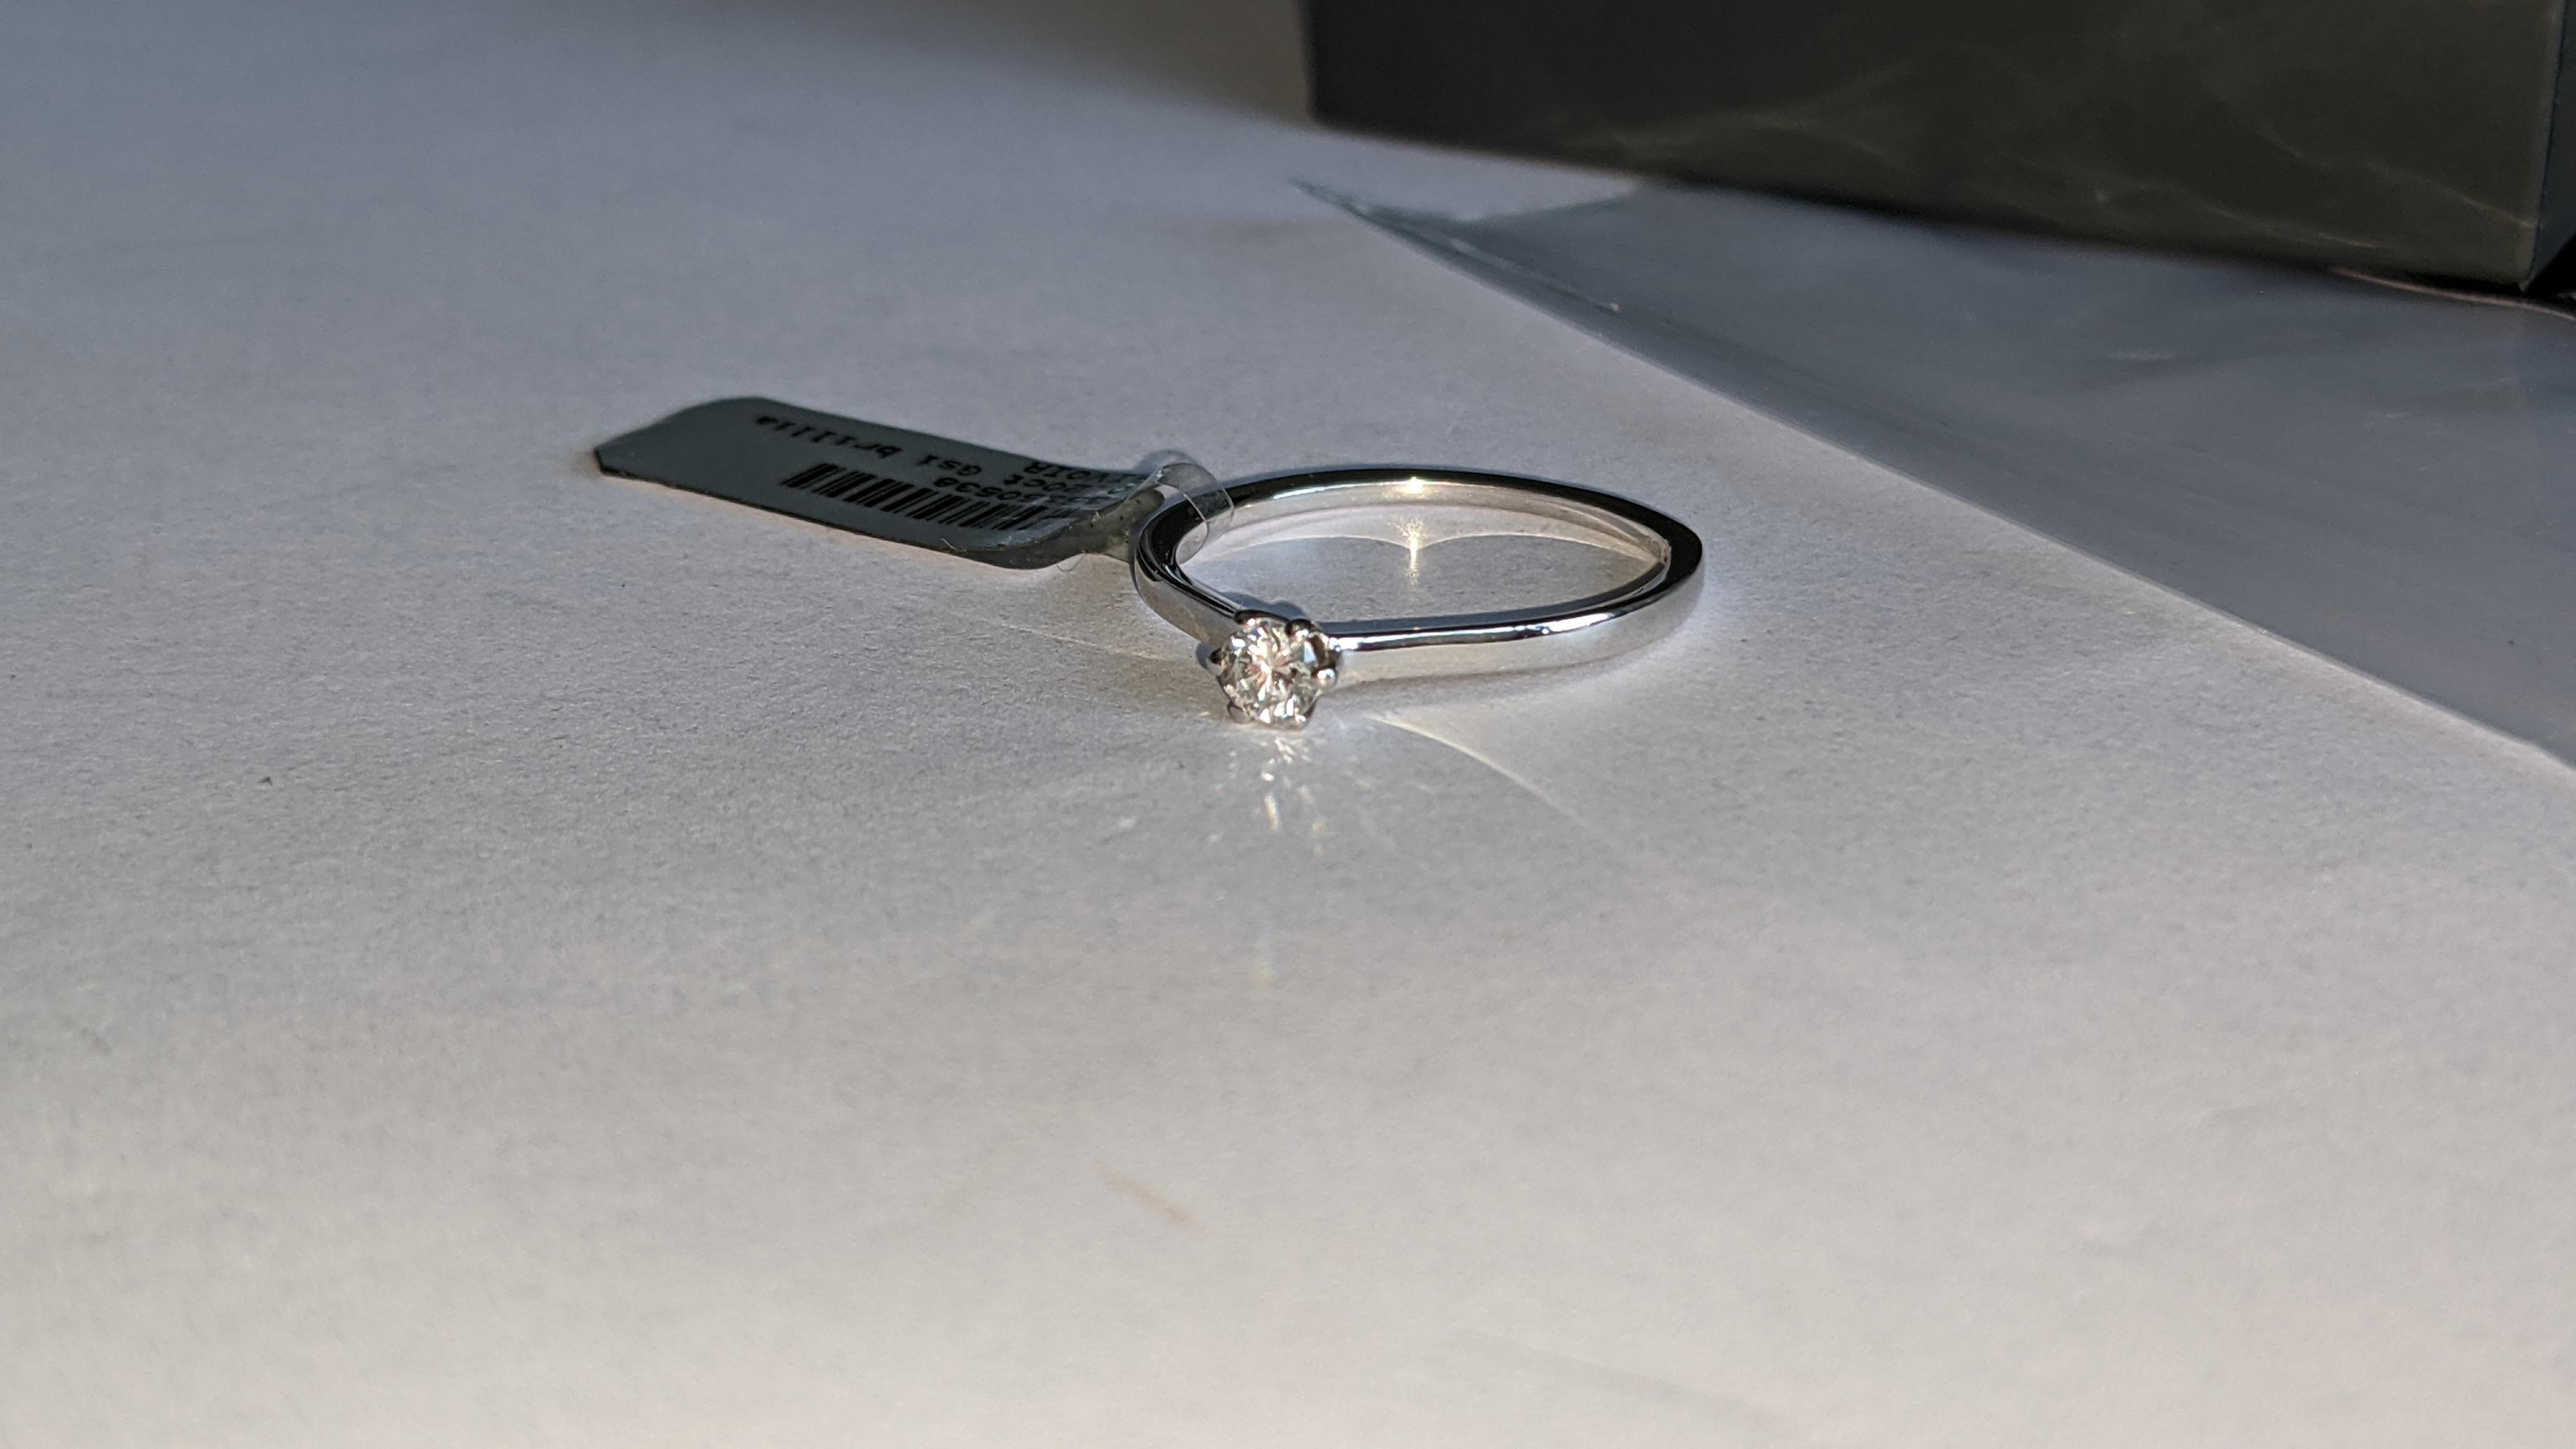 18ct white gold ring with 0.20ct G/Si brilliant cut diamond RRP £1,152 - Image 9 of 16